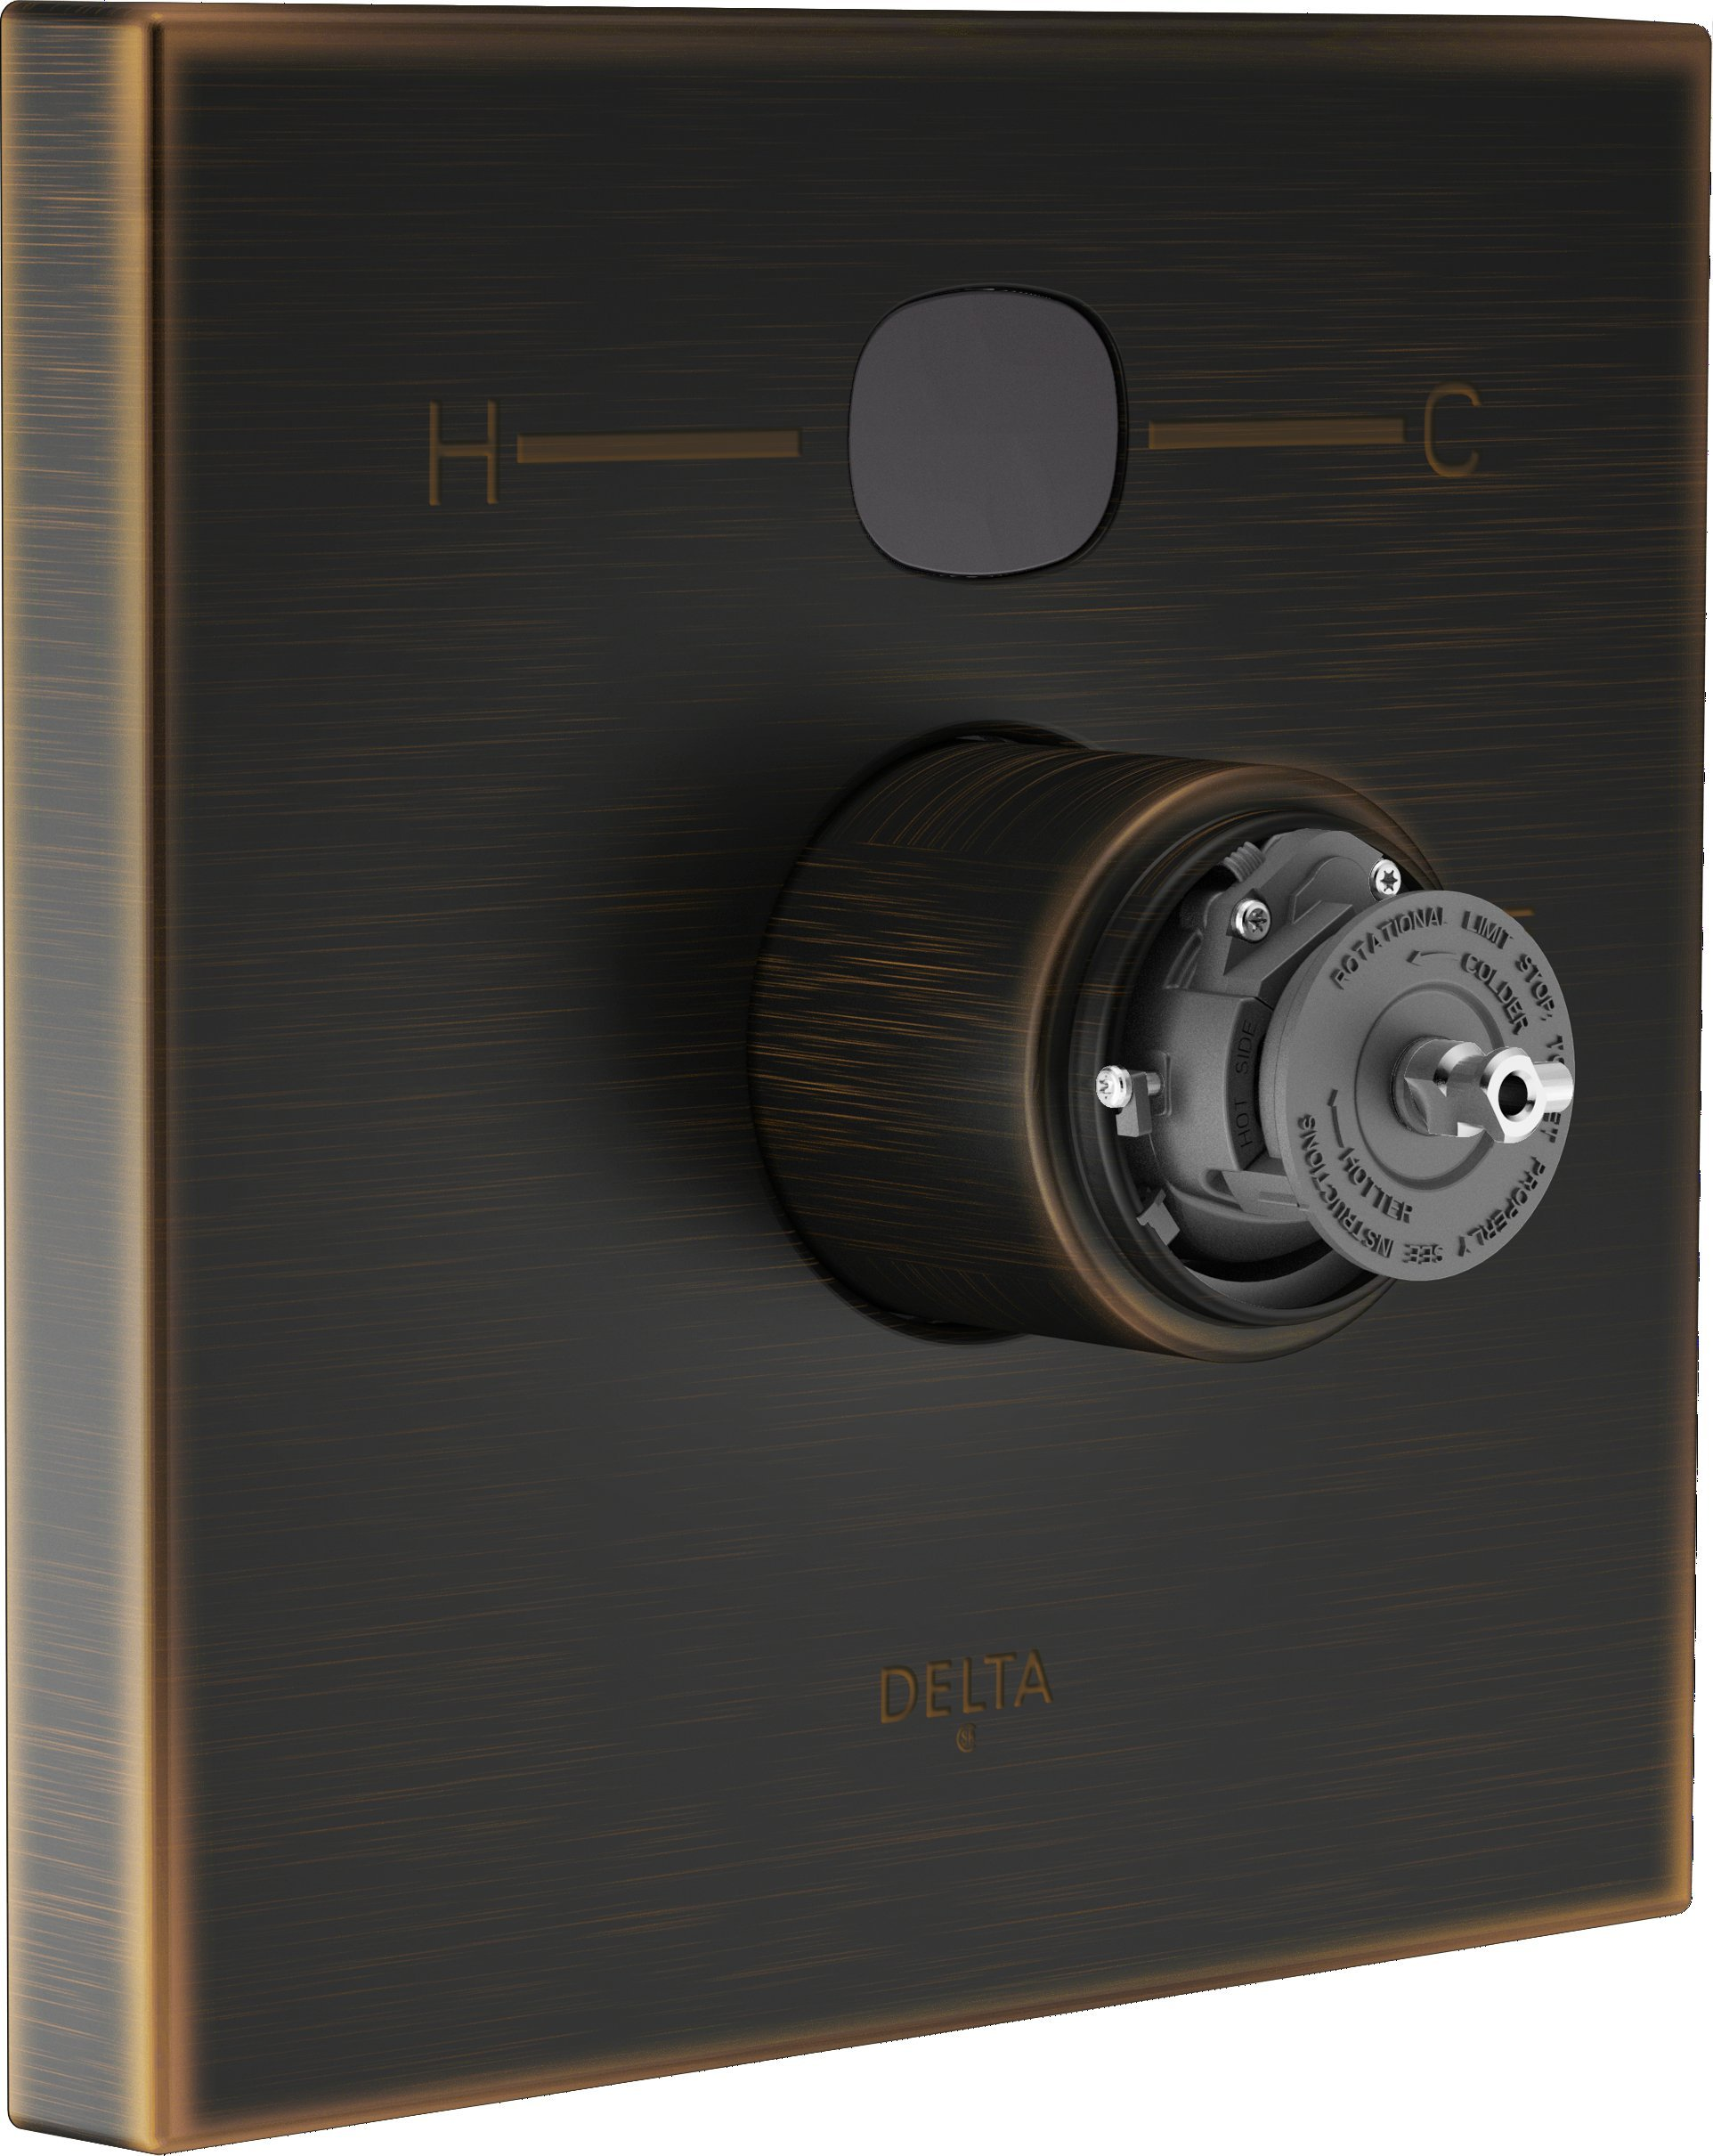 Delta T14001-RBT2O-LHP Angular Modern Temp2O Valve Trim without Handle, Venetian Bronze by DELTA FAUCET